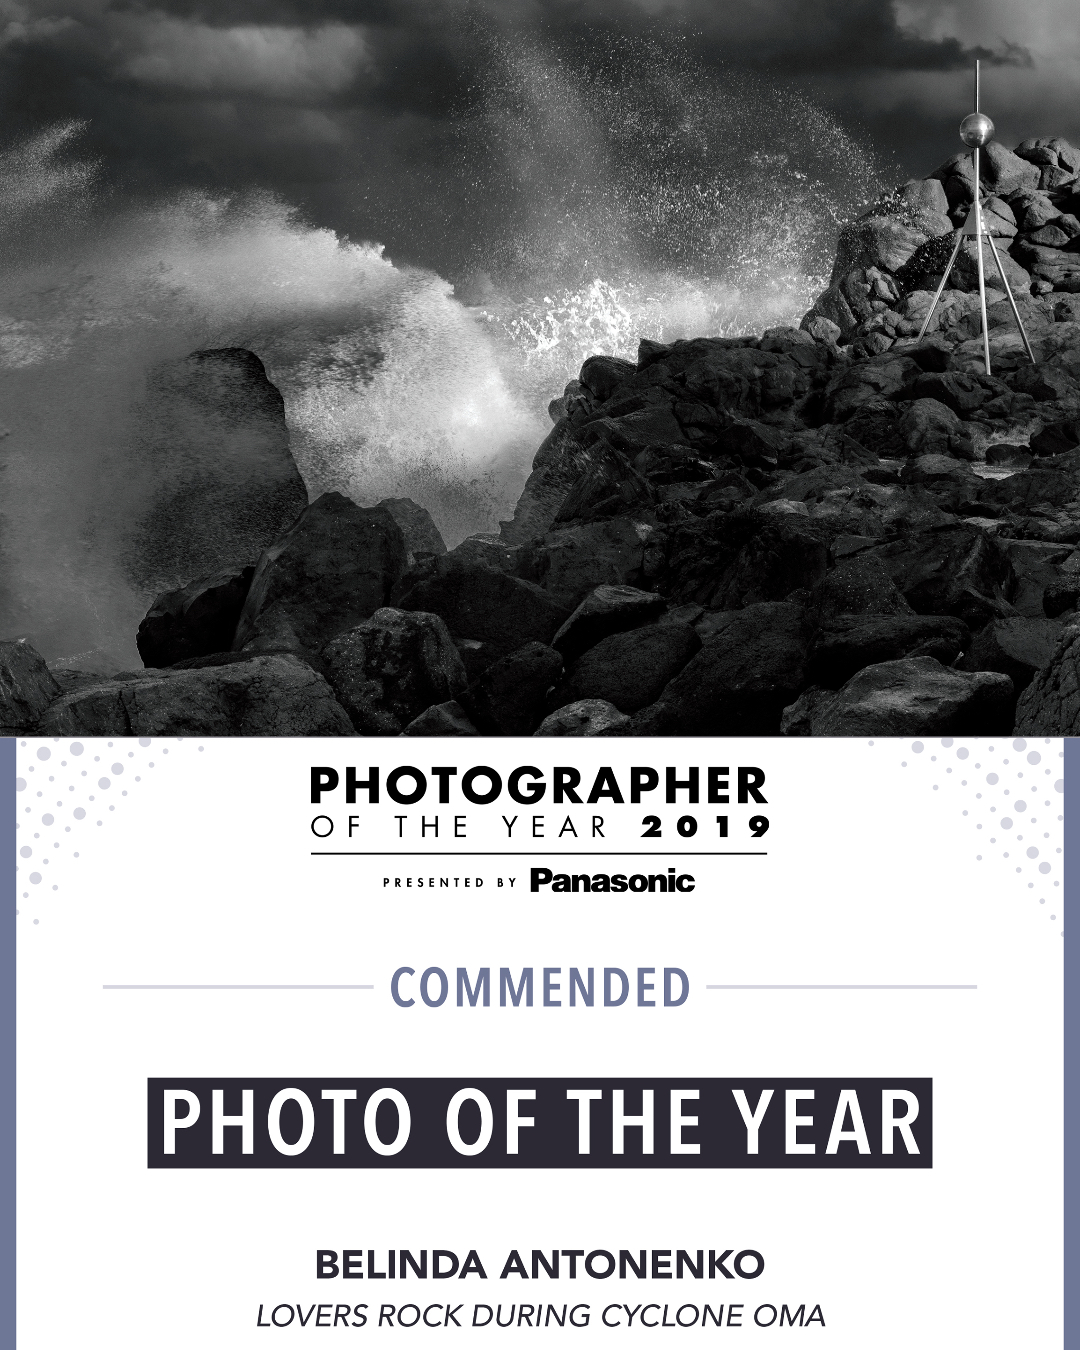 Photographer Of The Year Award - Lovers Rock During Cyclone Oma